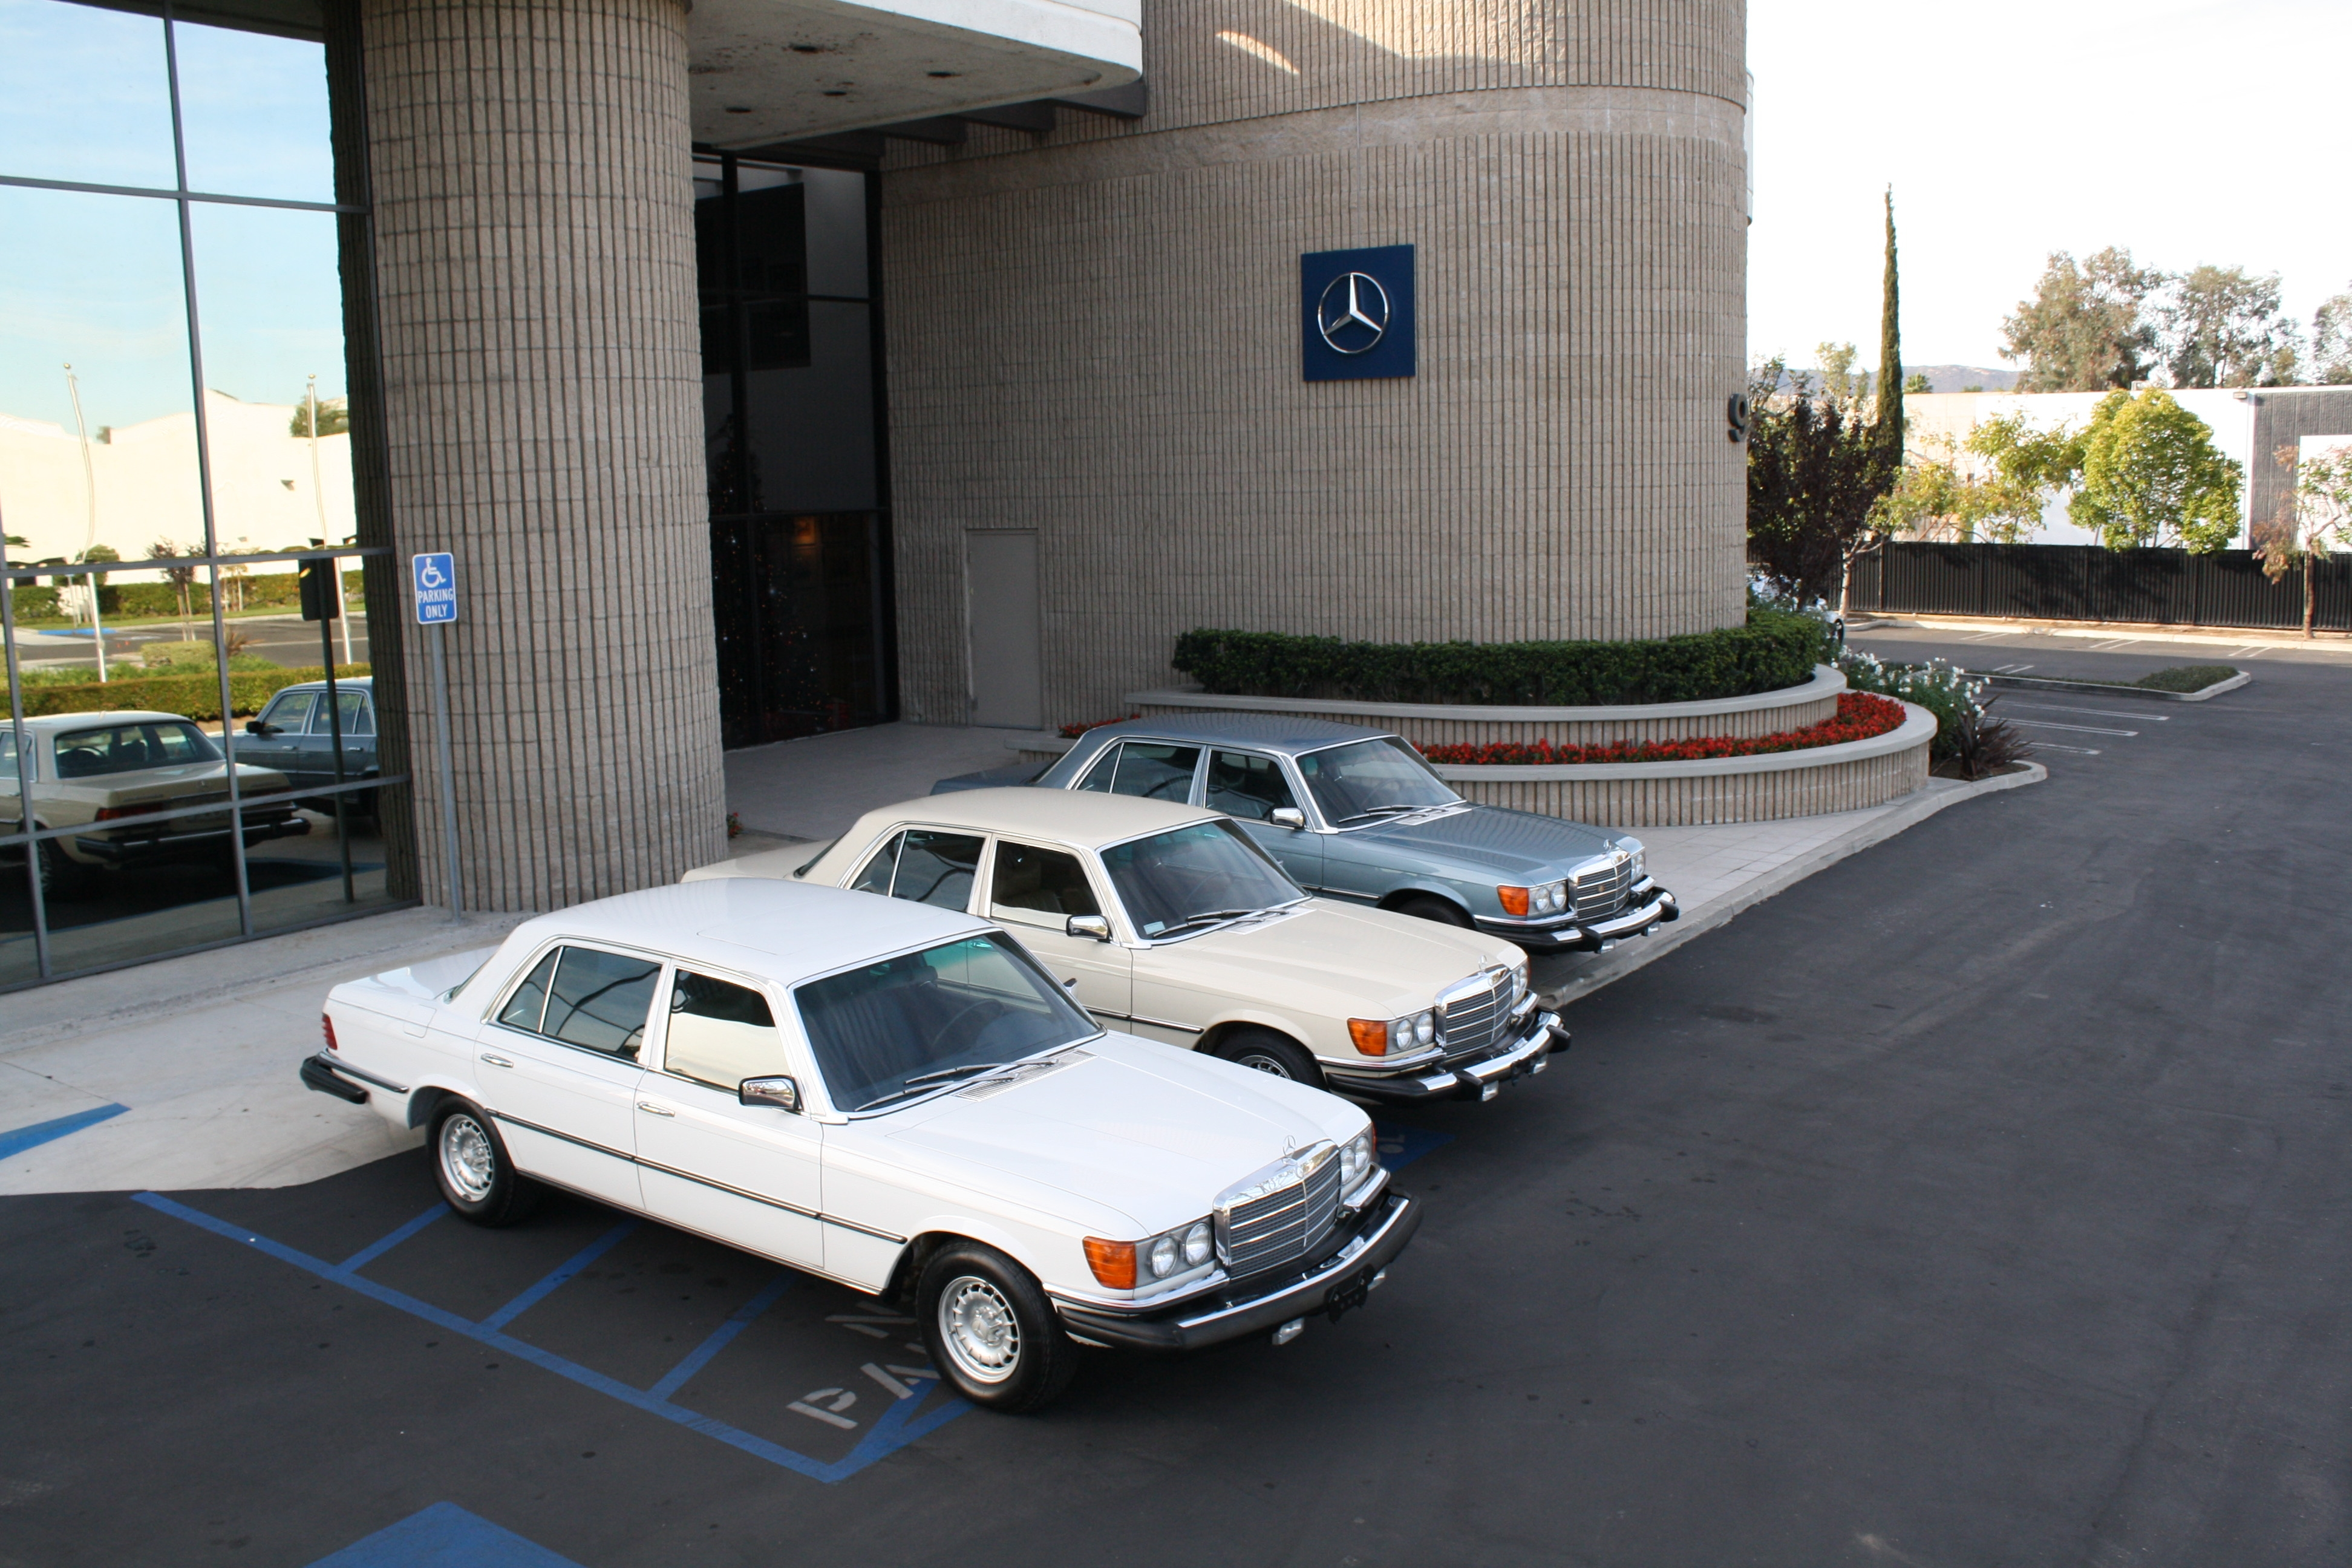 Cool car places mercedes benz classic center irvine ca for Mercedes benz of irvine